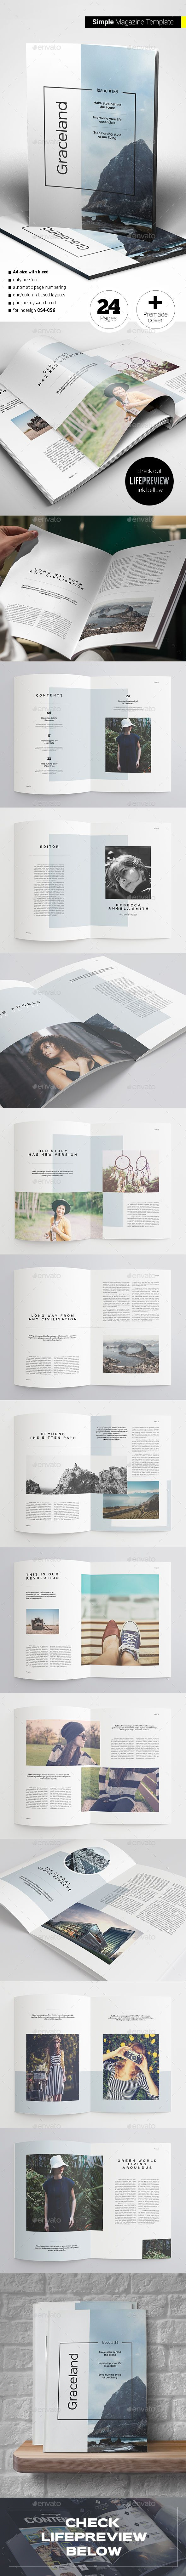 Simple Magazine Template InDesign INDD. Download here: https://graphicriver.net/item/simple-magazine/17182438?ref=ksioks